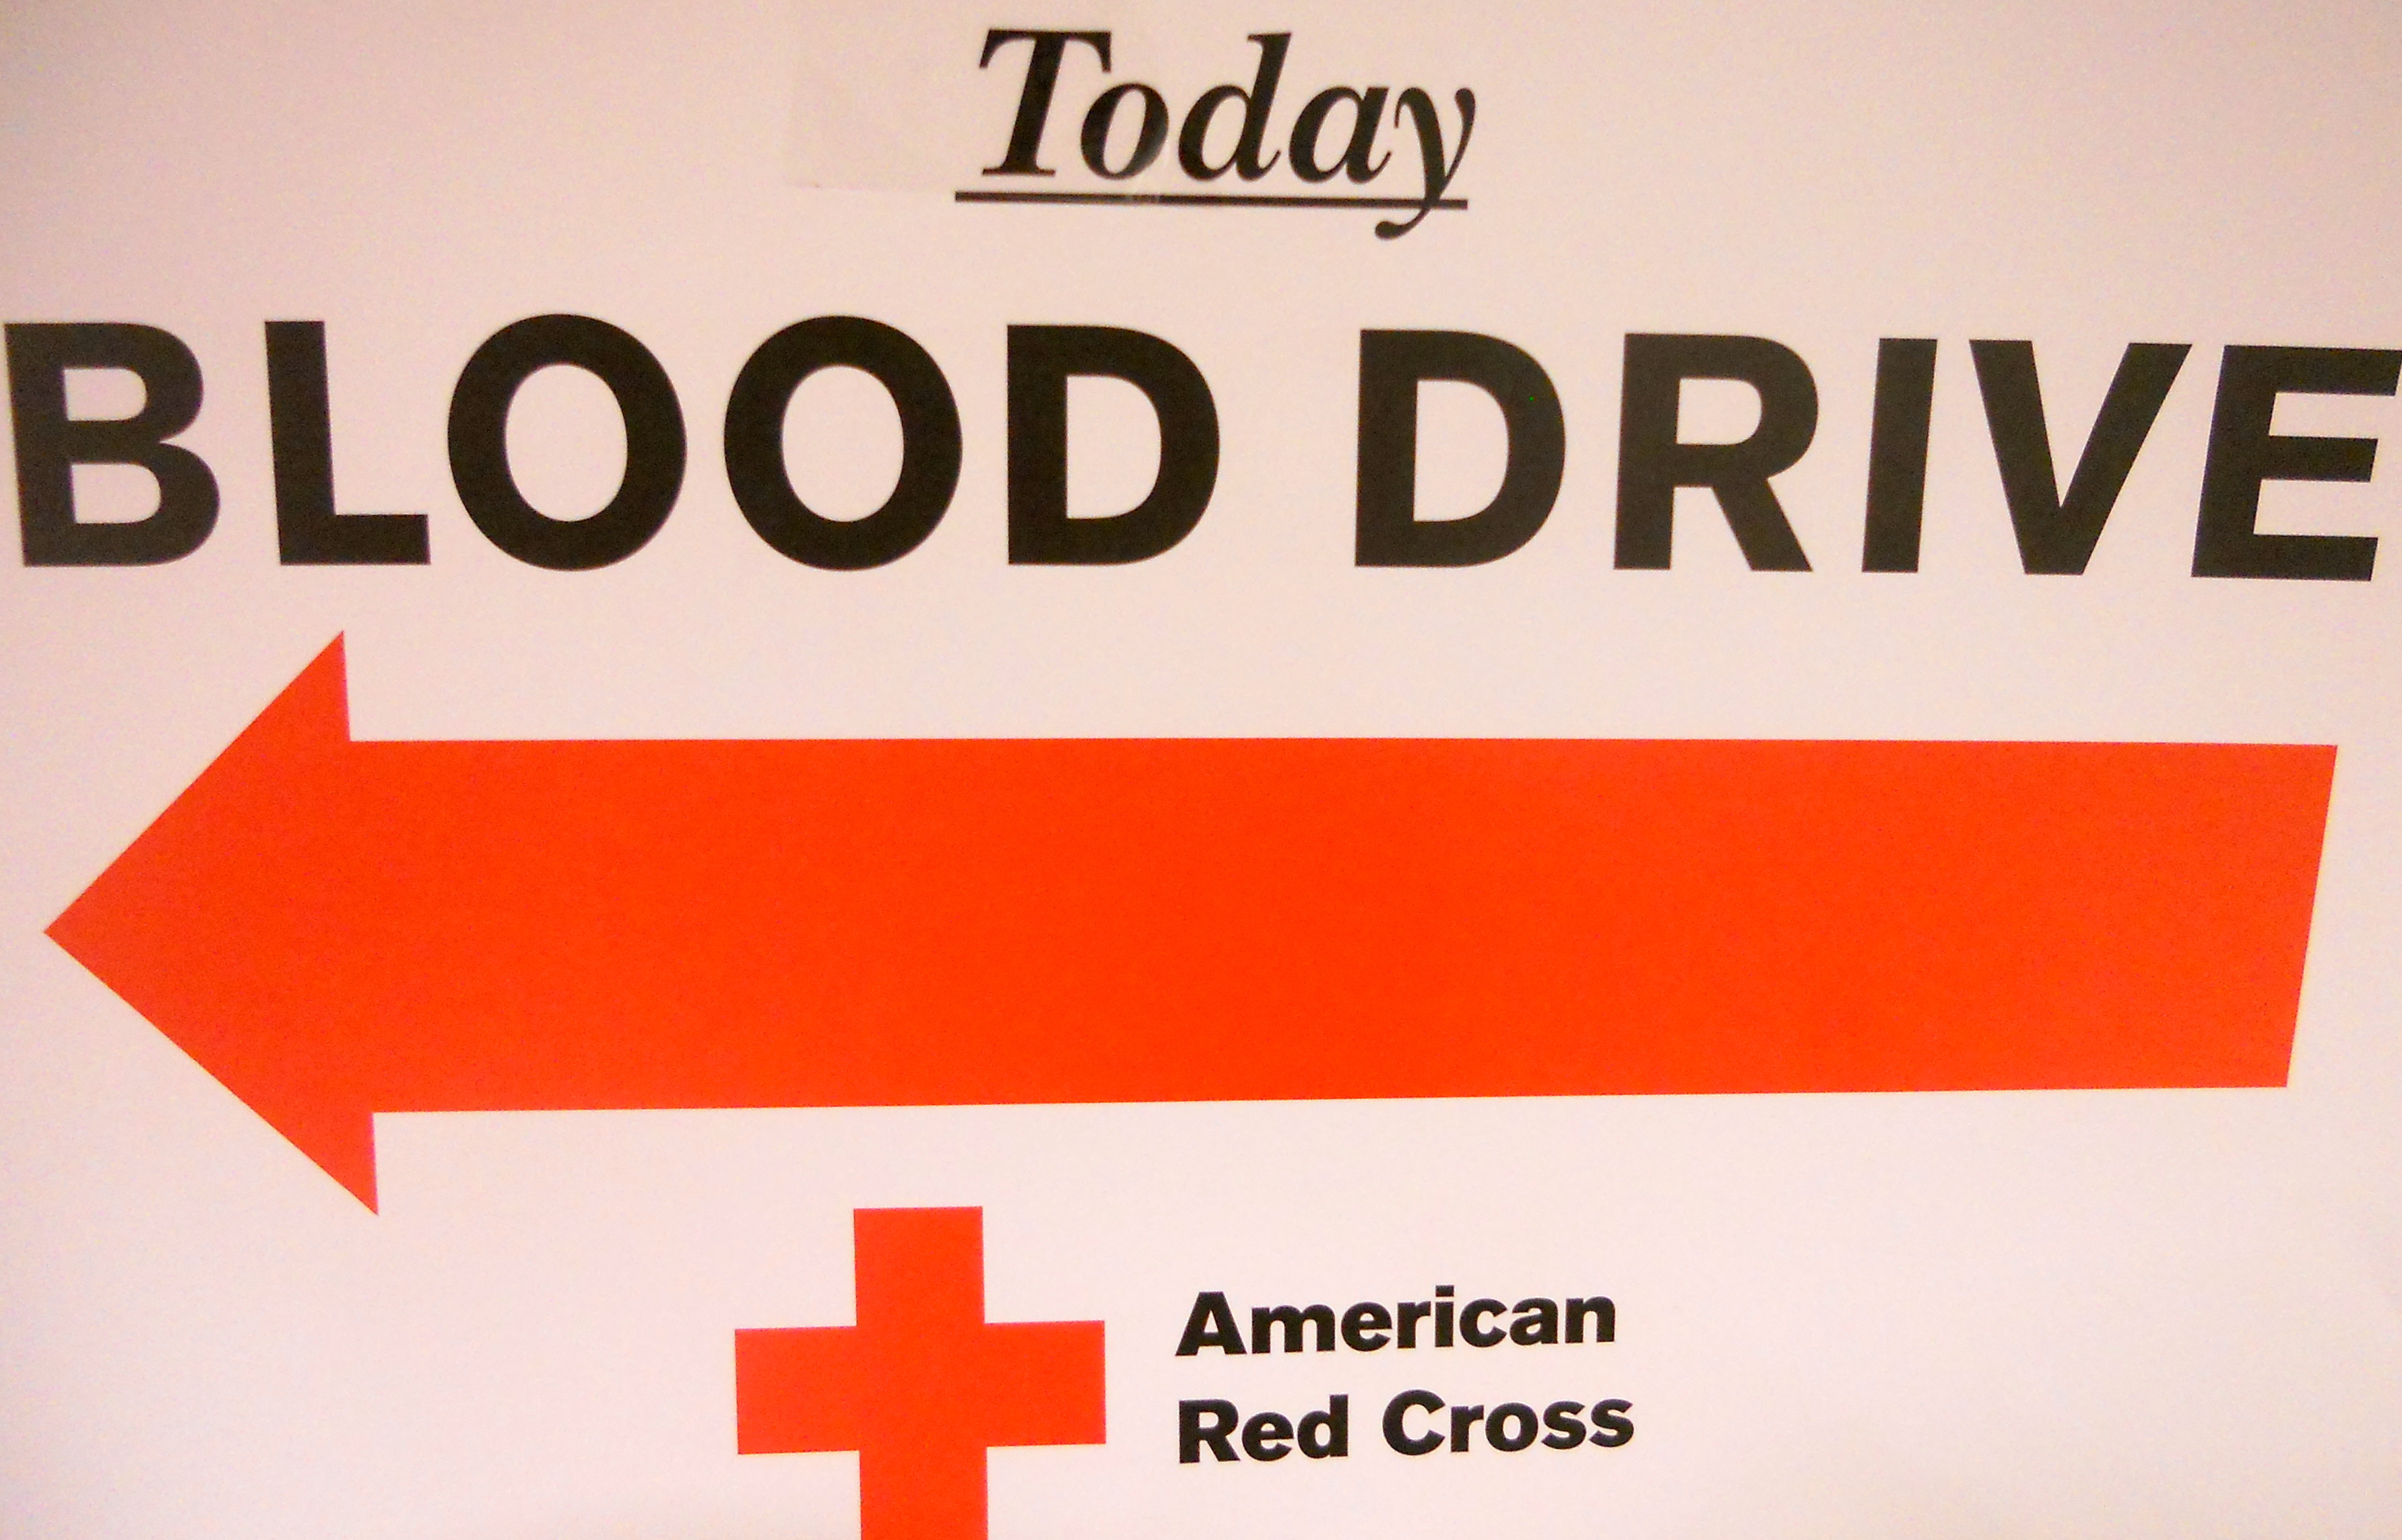 photo of a blood drive sign